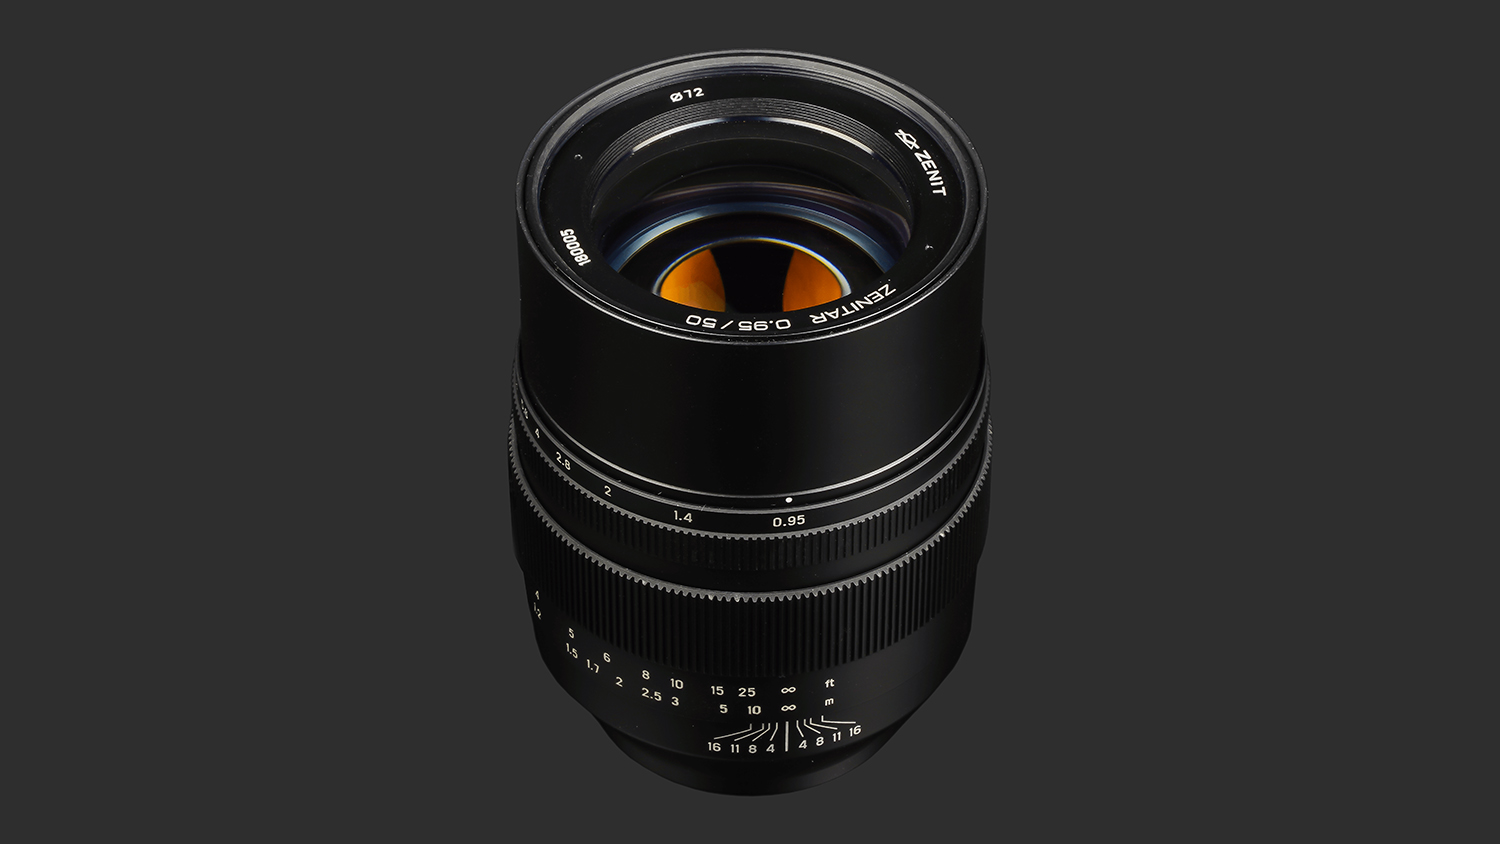 Zenitar 0.95/50 super fast Sony E-mount lens finally available